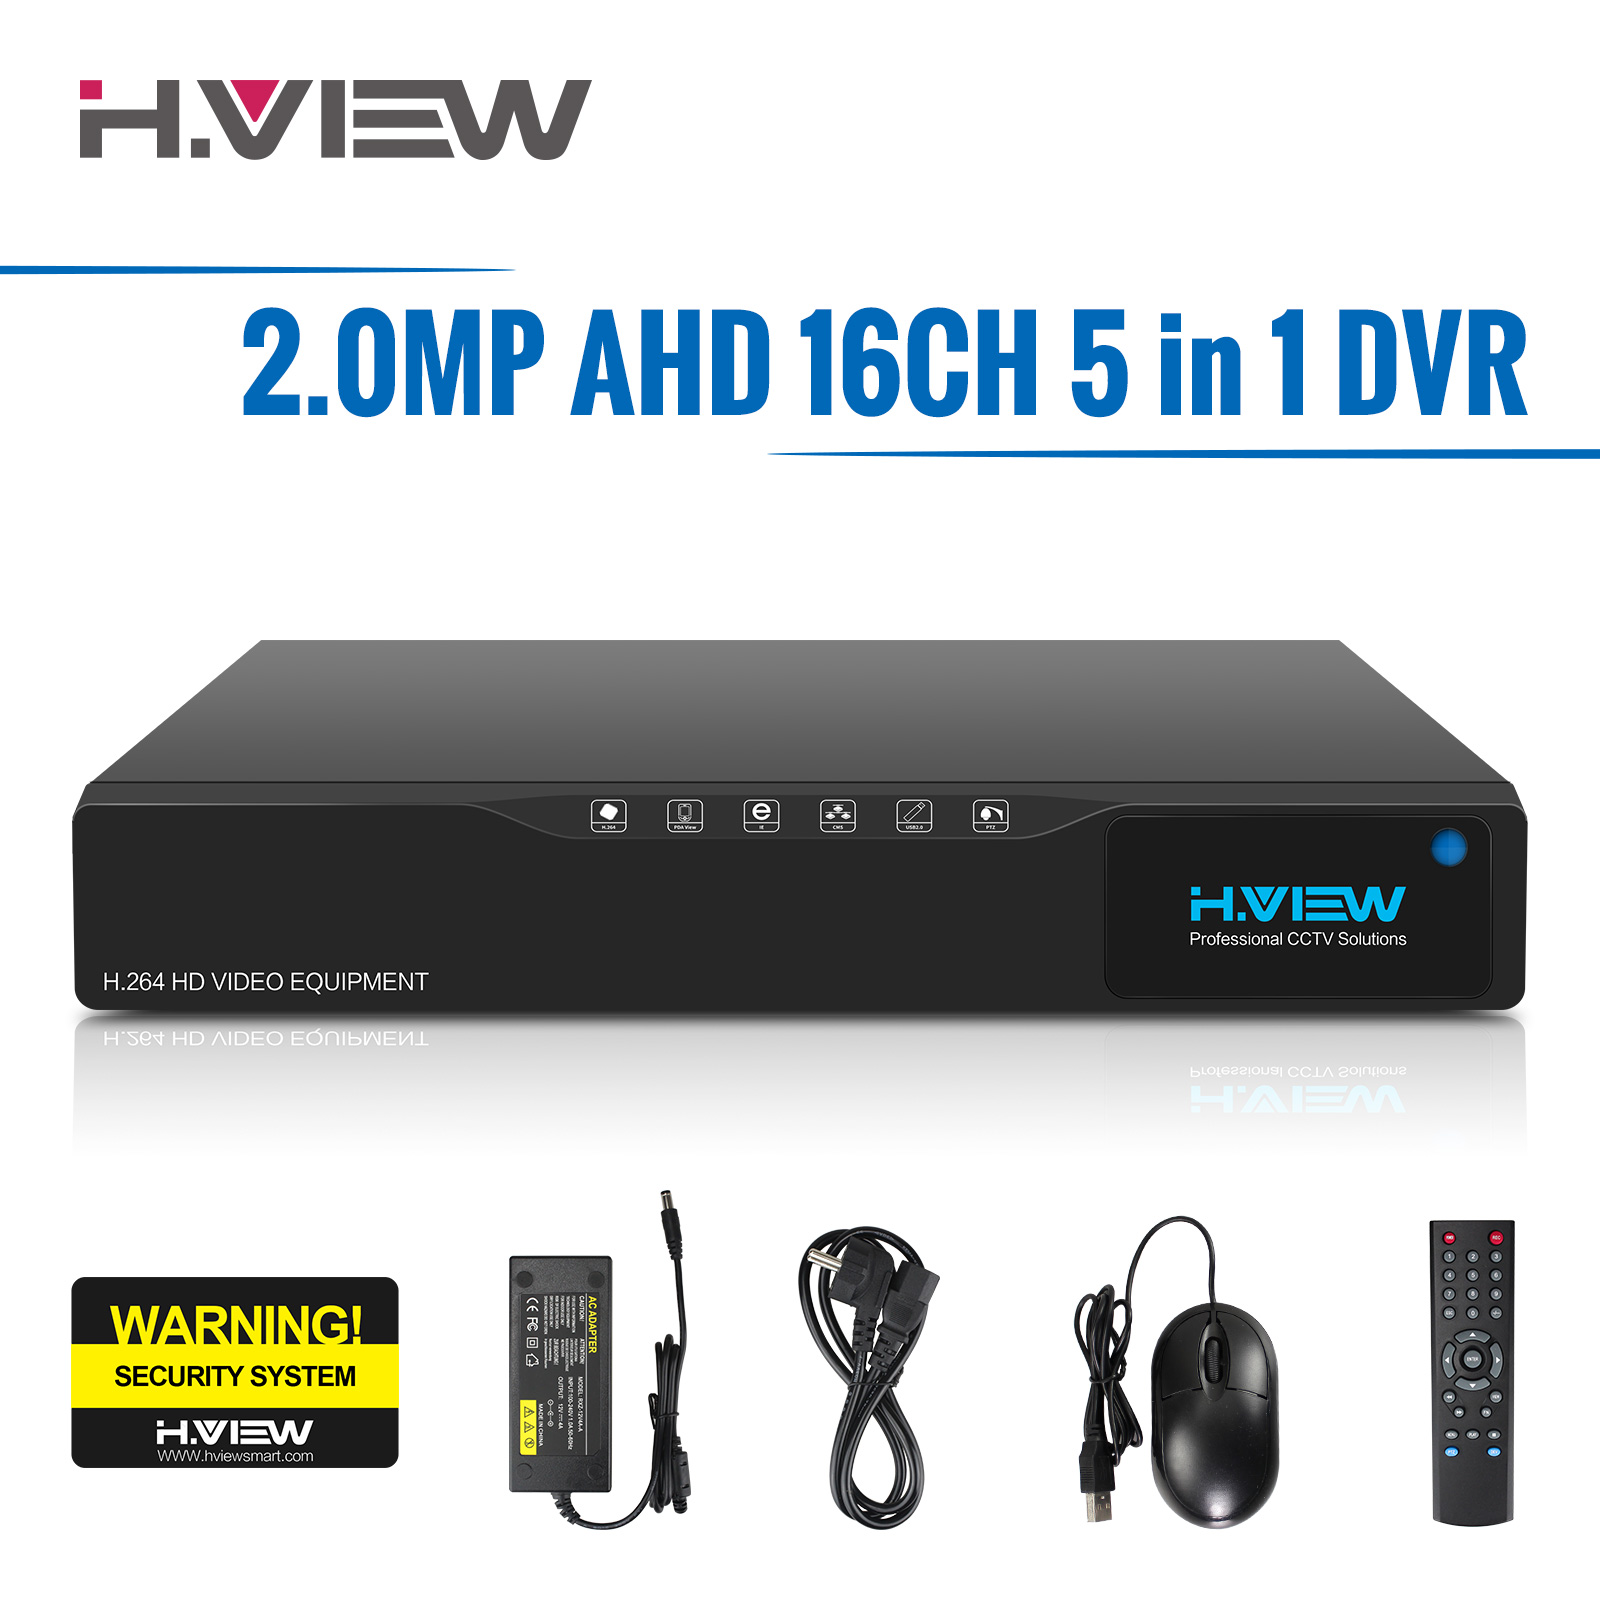 16 CH 1080N CCTV DVR Recorder H.264 HDMI Network Digital Video Recorder Suit Anolg AHD CCTV Camera  For Home Security System sannce 8 channel 720p 1080n h 264 video recorder hdmi network cctv dvr 8ch for home security camera surveillance system kit